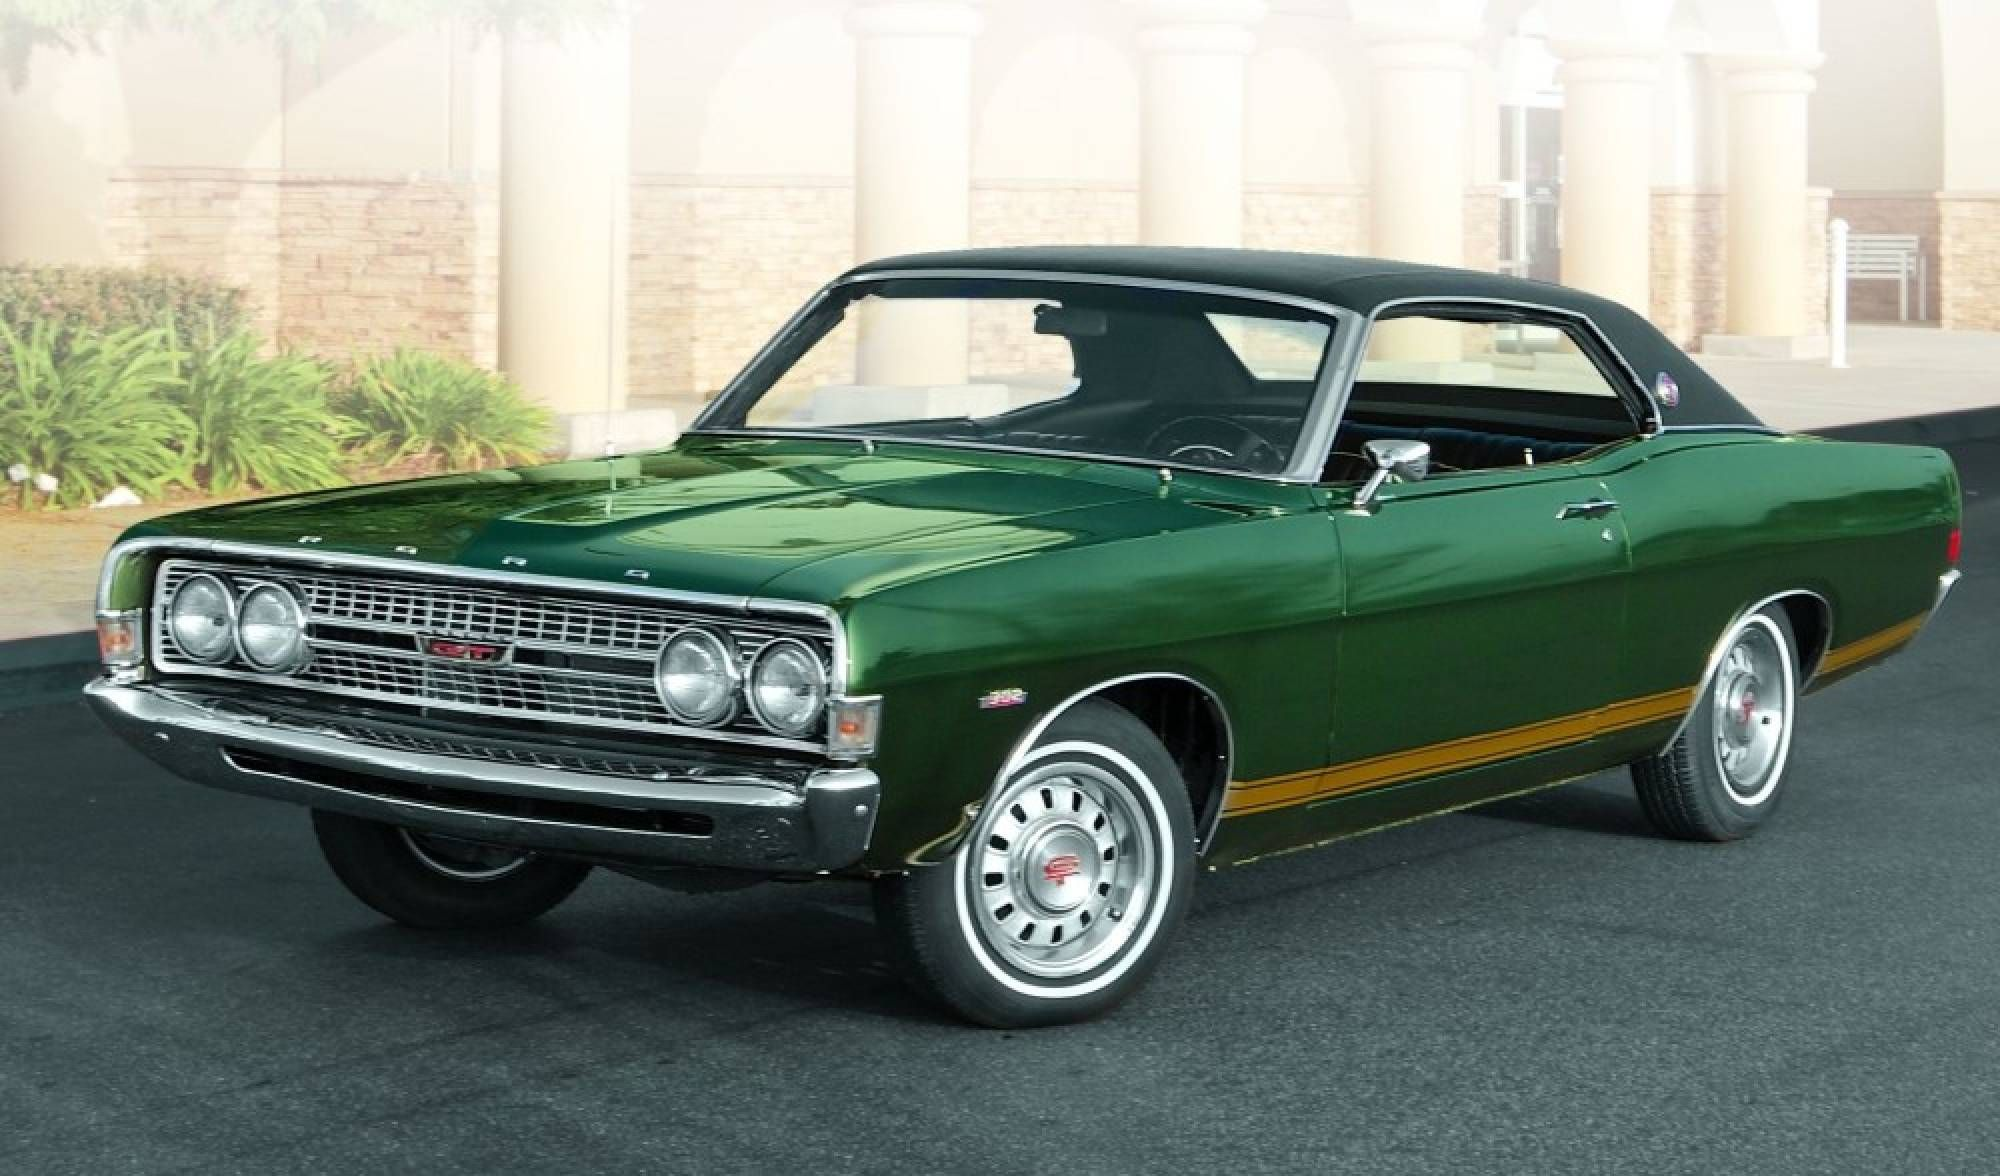 Grand Return - 1968 Ford Torino GT   Ford torino, Ford and Cars